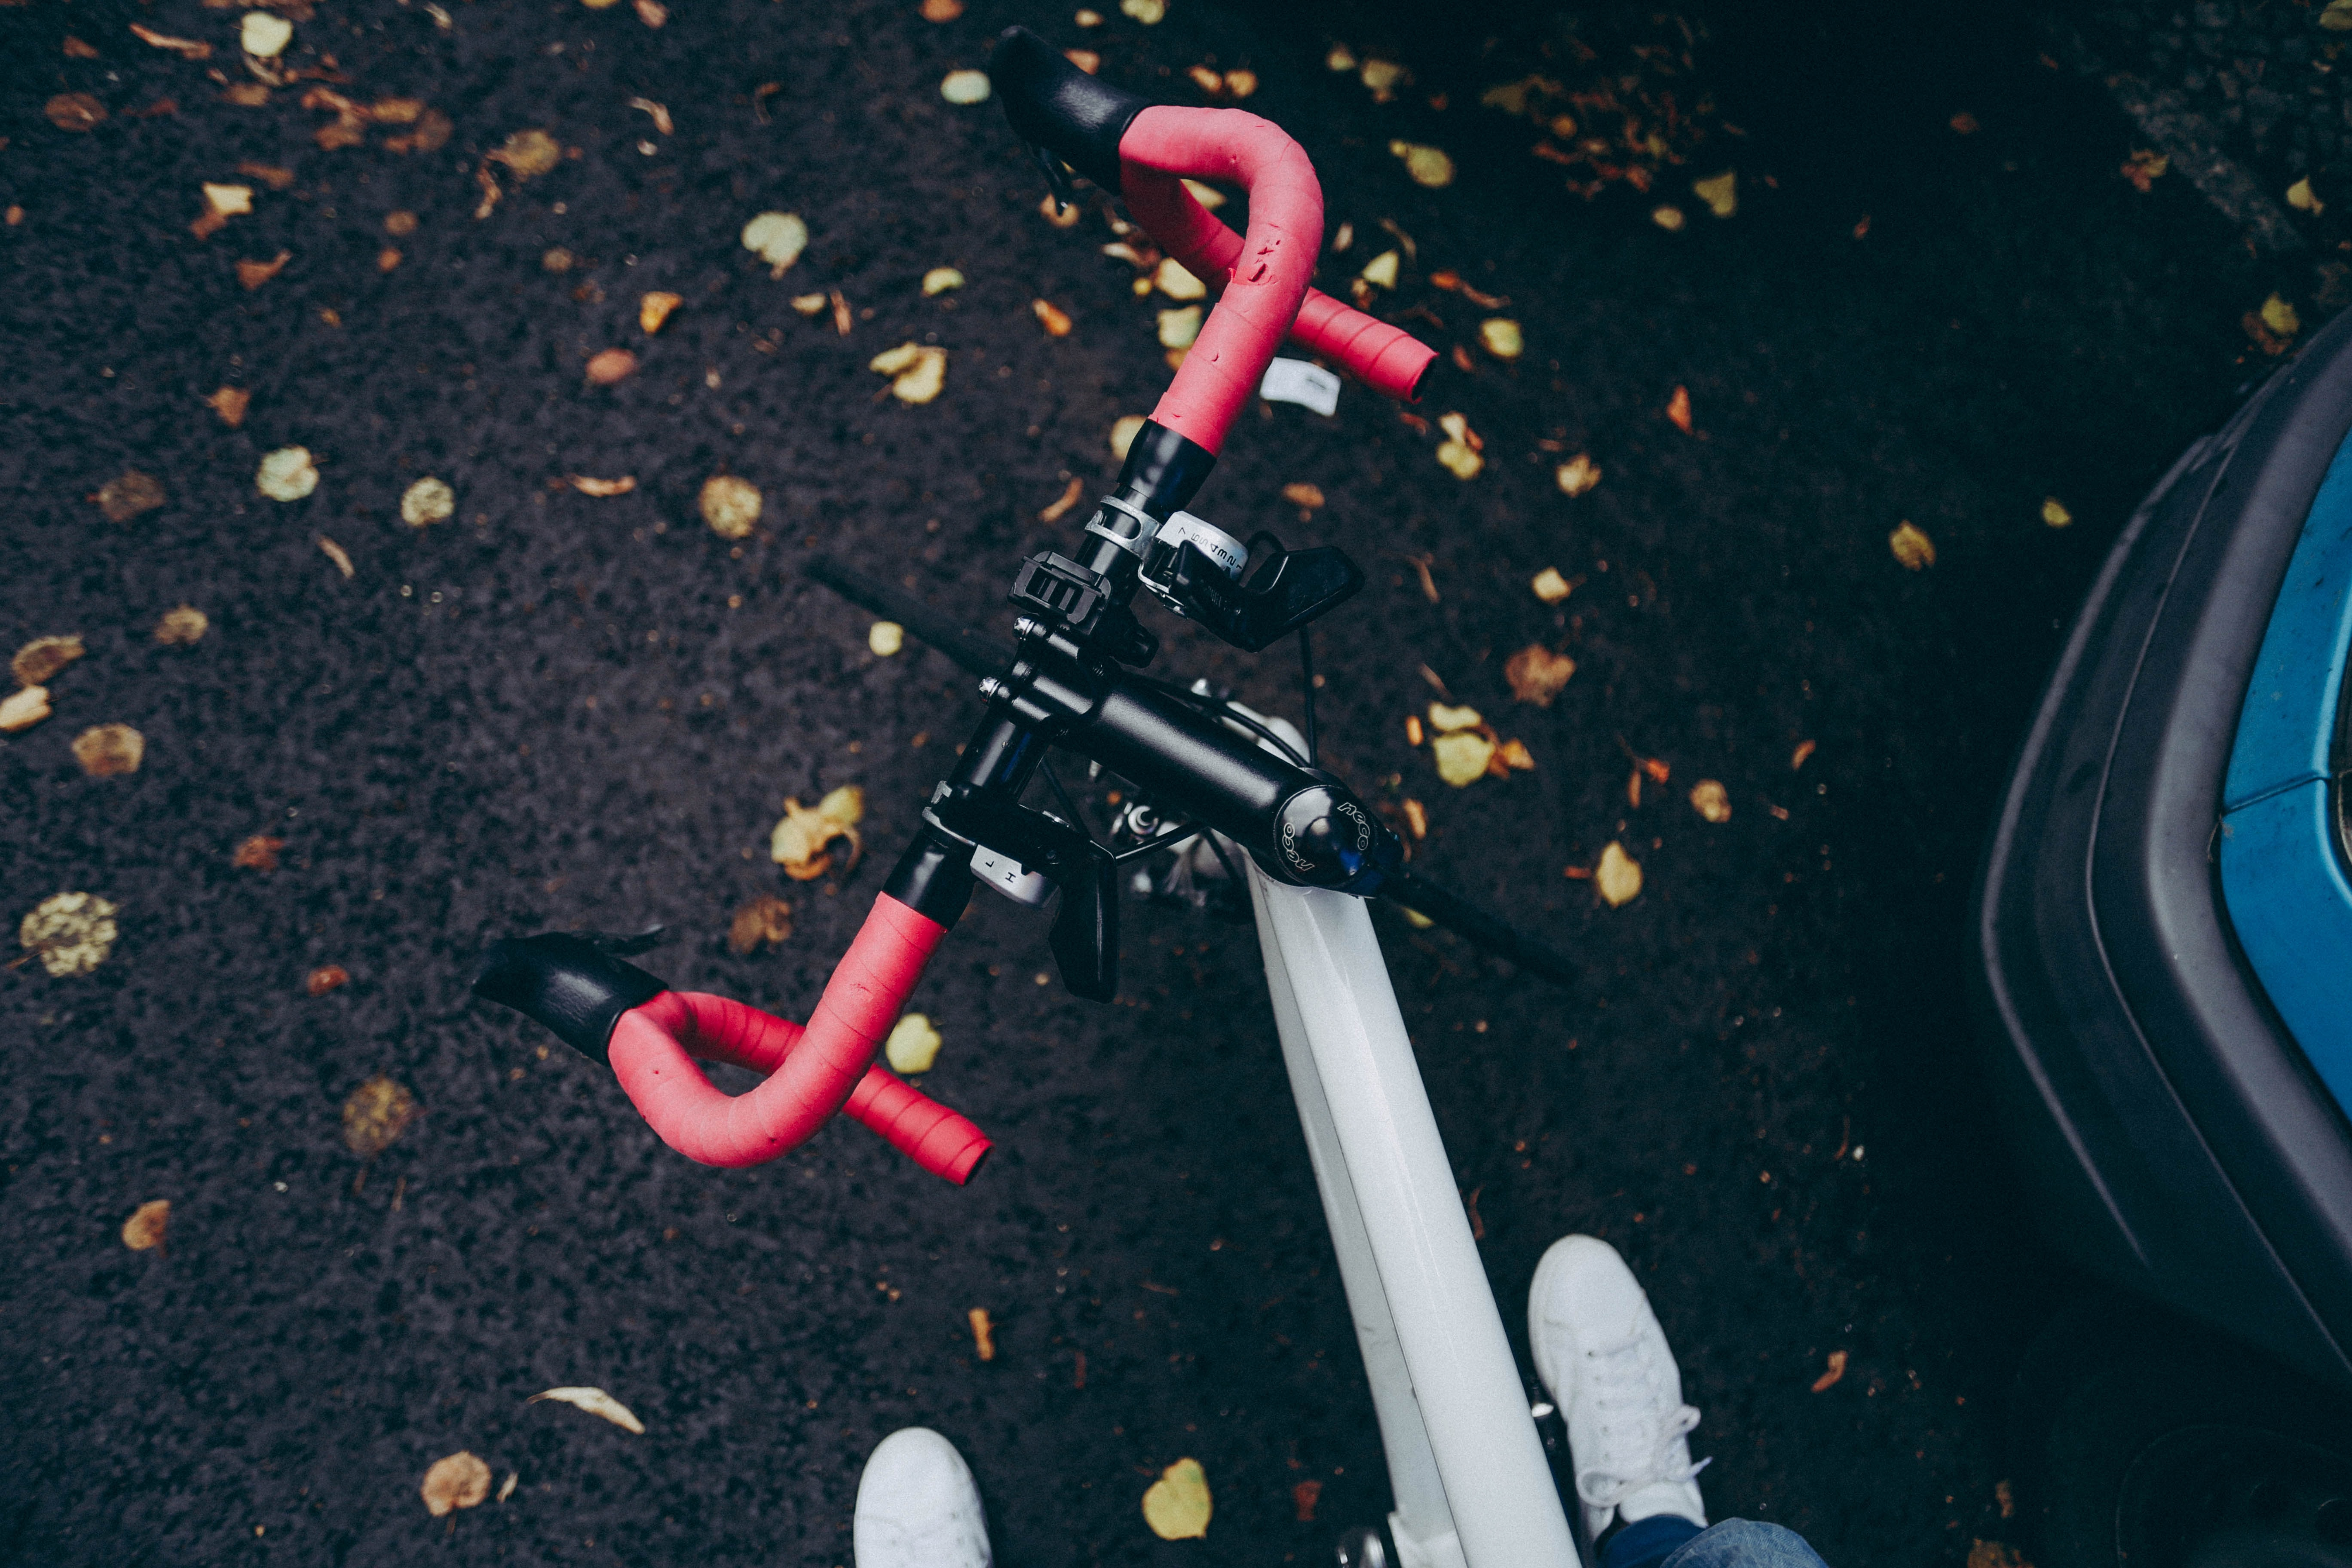 An overhead shot of the handlebars of a racing bike and the shoes of the cyclist.